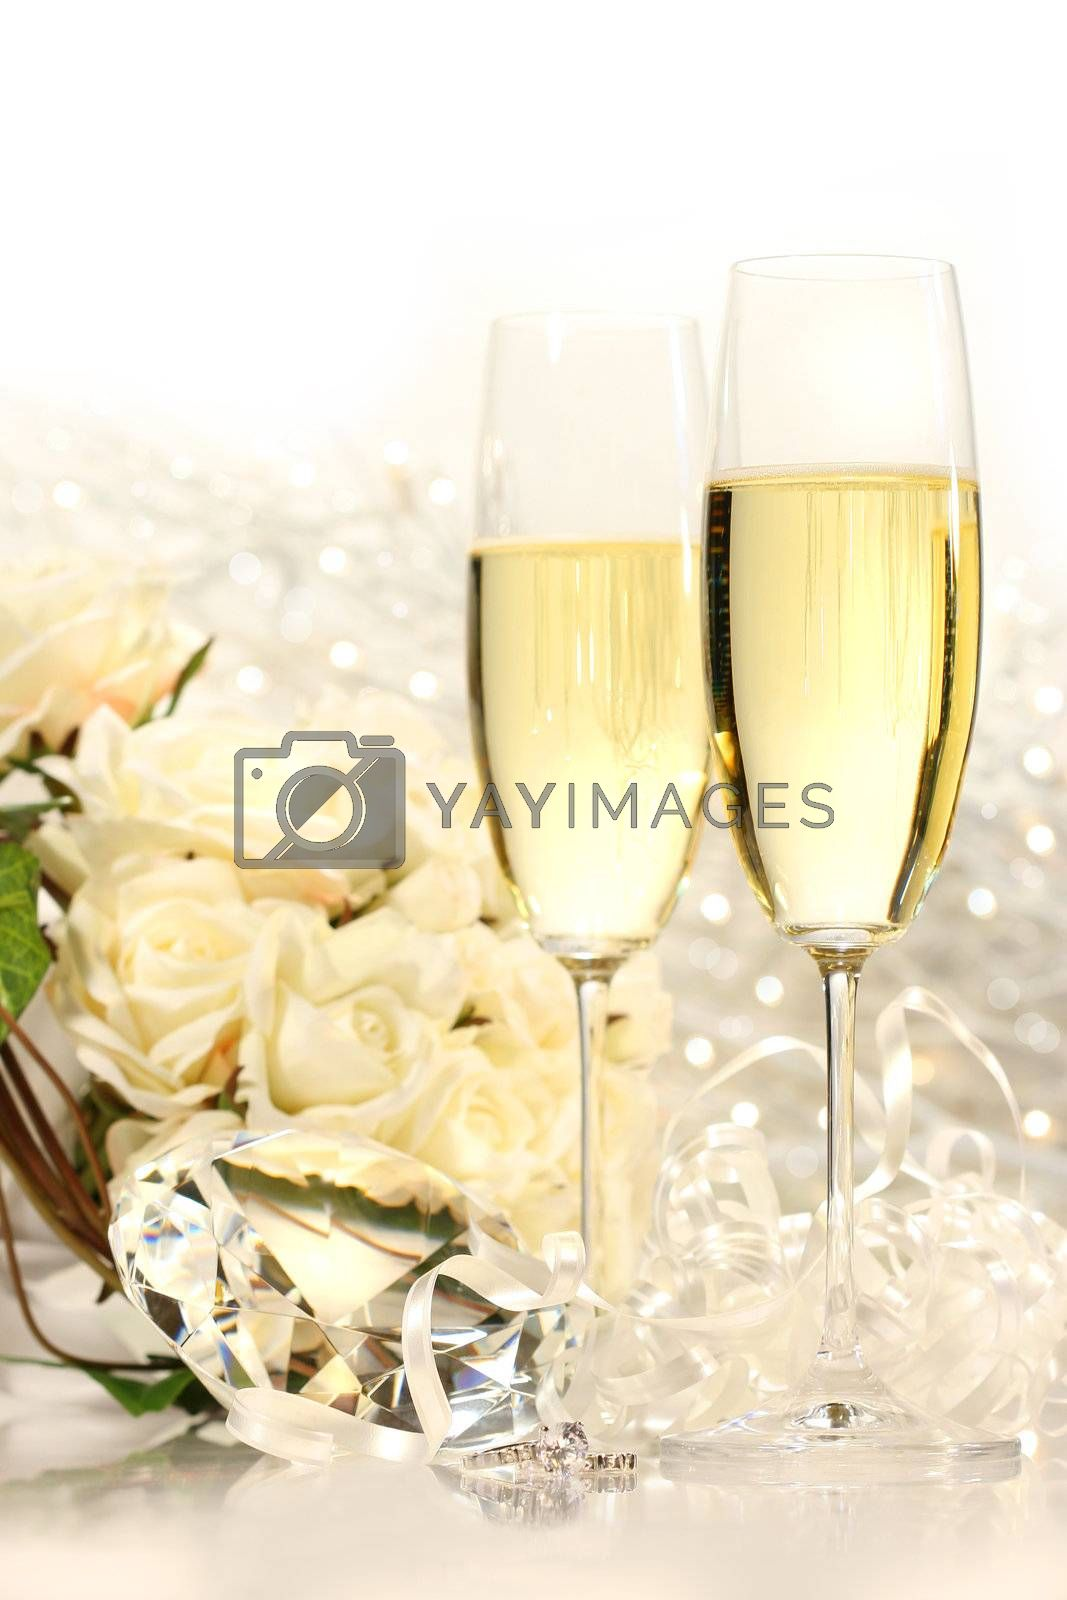 Champagne glasses ready for wedding festivities by Sandralise